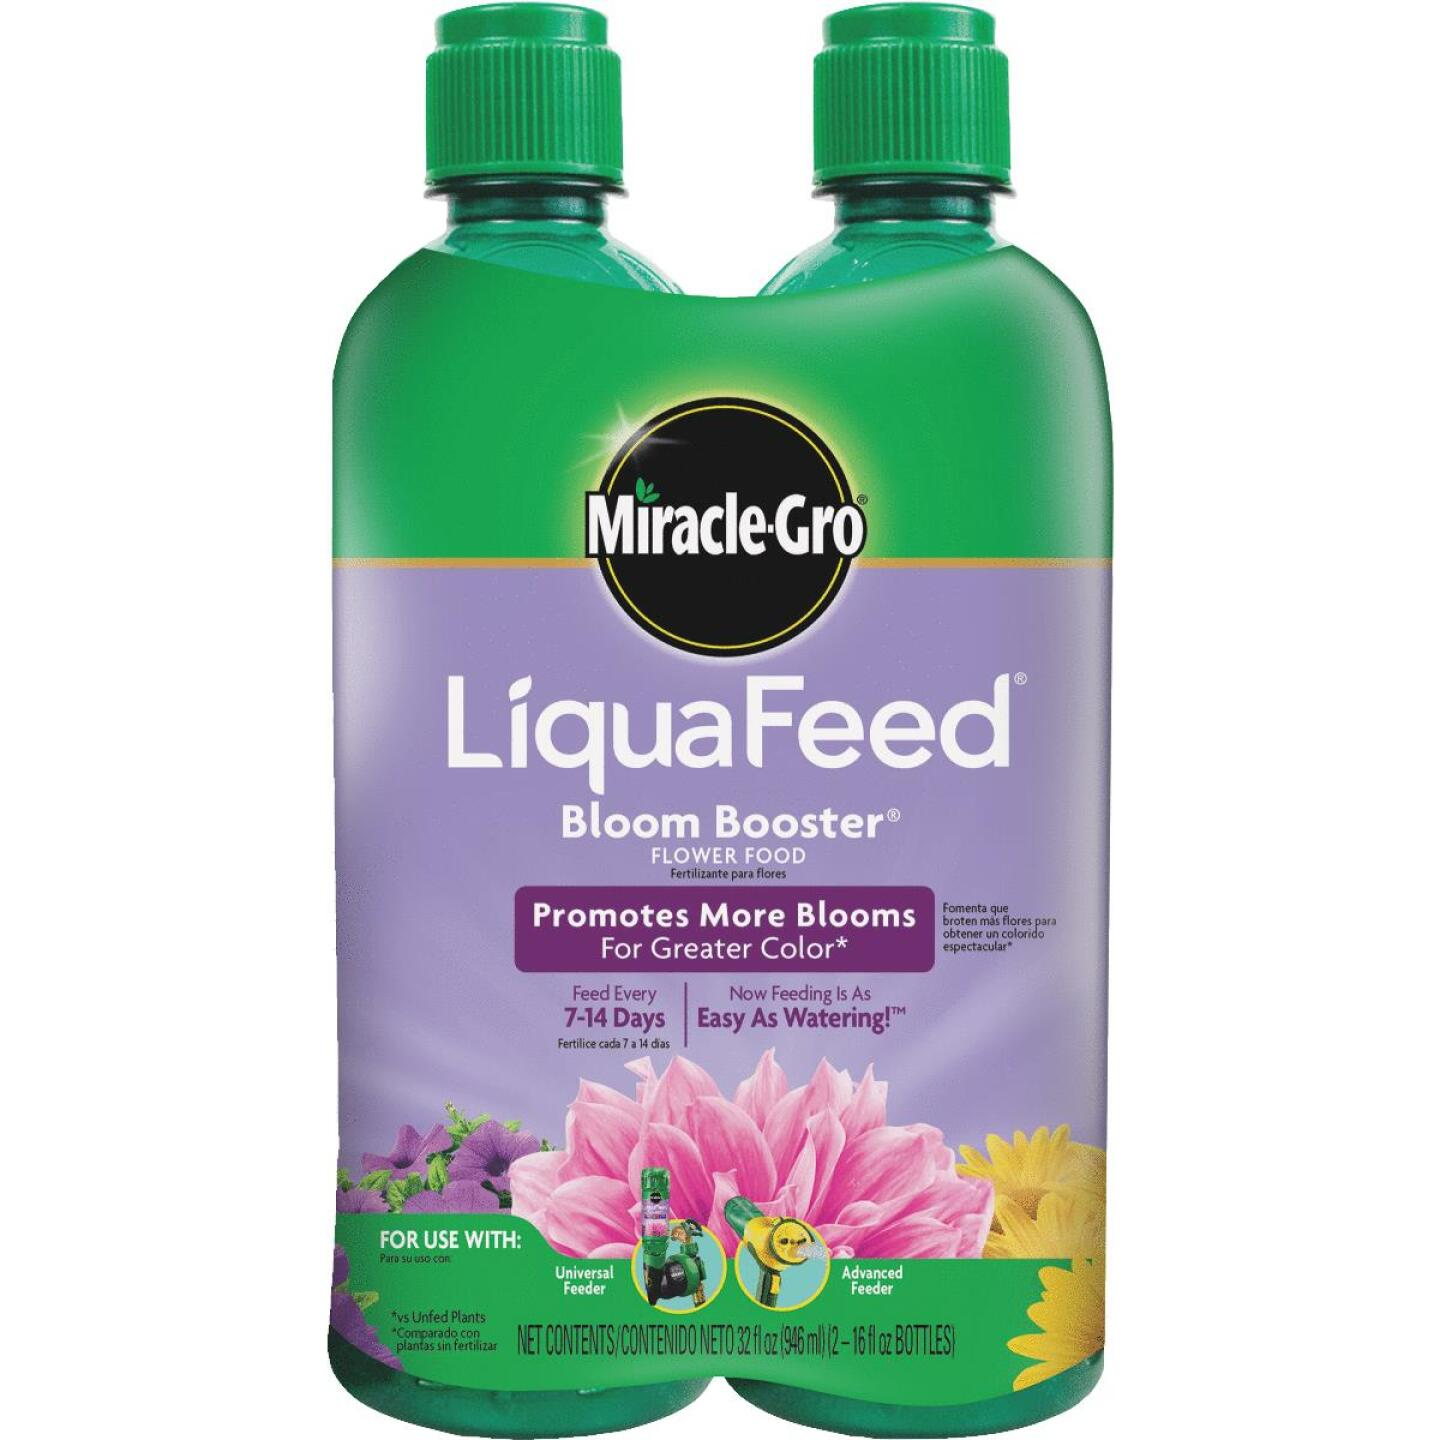 Miracle-Gro 16 Oz. Ea. 12-9-6 Ready To Use Liquid Plant Food Image 1